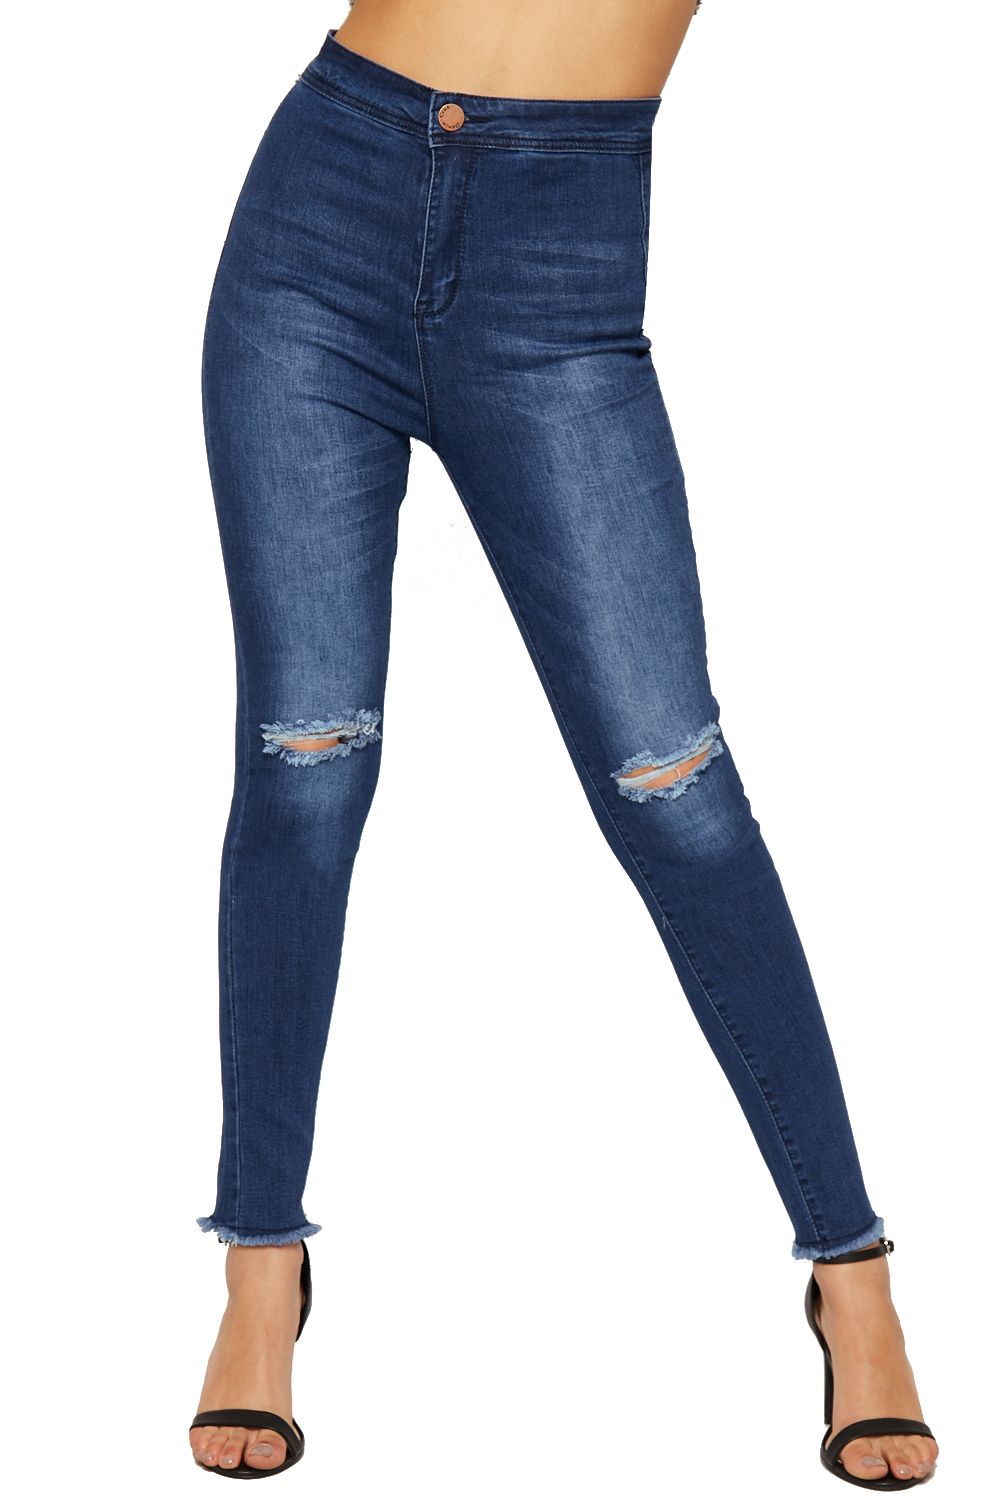 Show off your unique style in hip and affordable ripped jeans from Old Navy. Distressed Women's Jeans with Youthful Appeal. Distressed jeans are totally in. From slimming skinnies with holes at the knee to frayed boyfriends that fit just right, Old Navy has the distressed women's jeans you need to stay on-trend and show off your individual style.